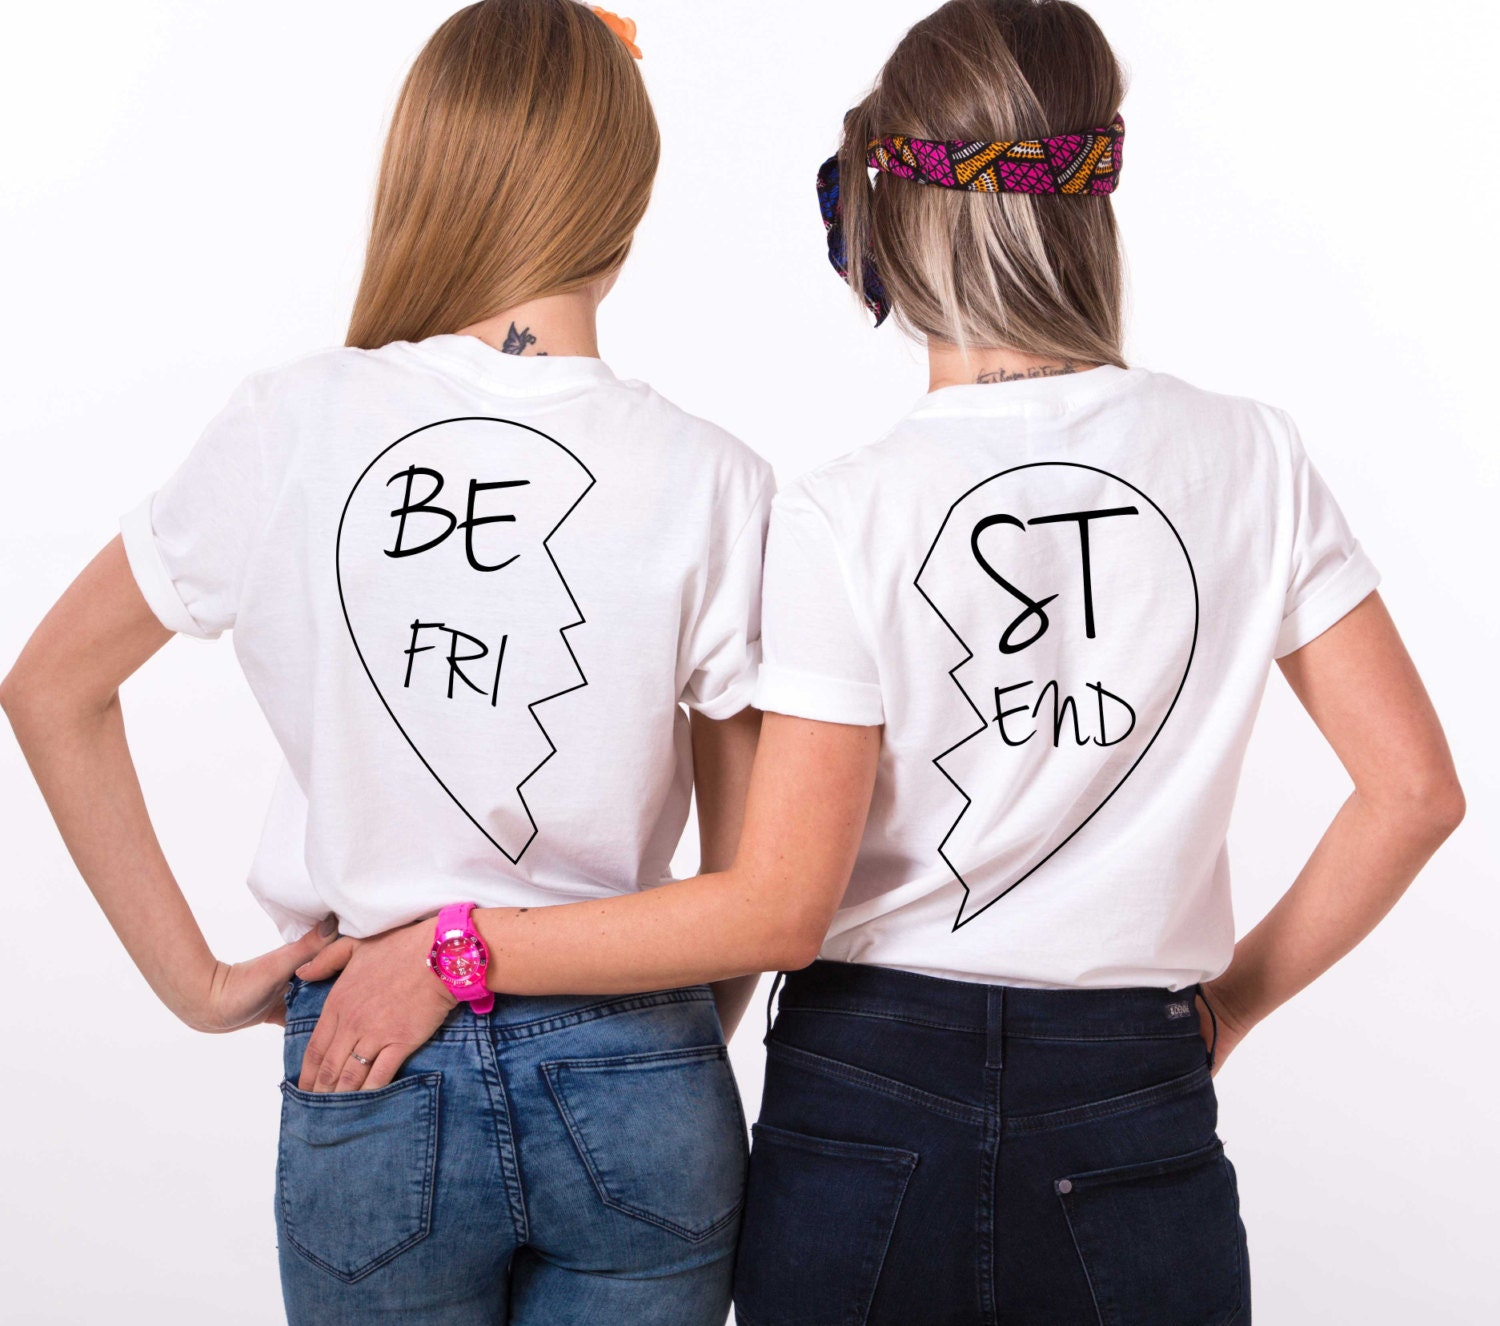 best friend shirts bff shirts matching best friend shirts. Black Bedroom Furniture Sets. Home Design Ideas